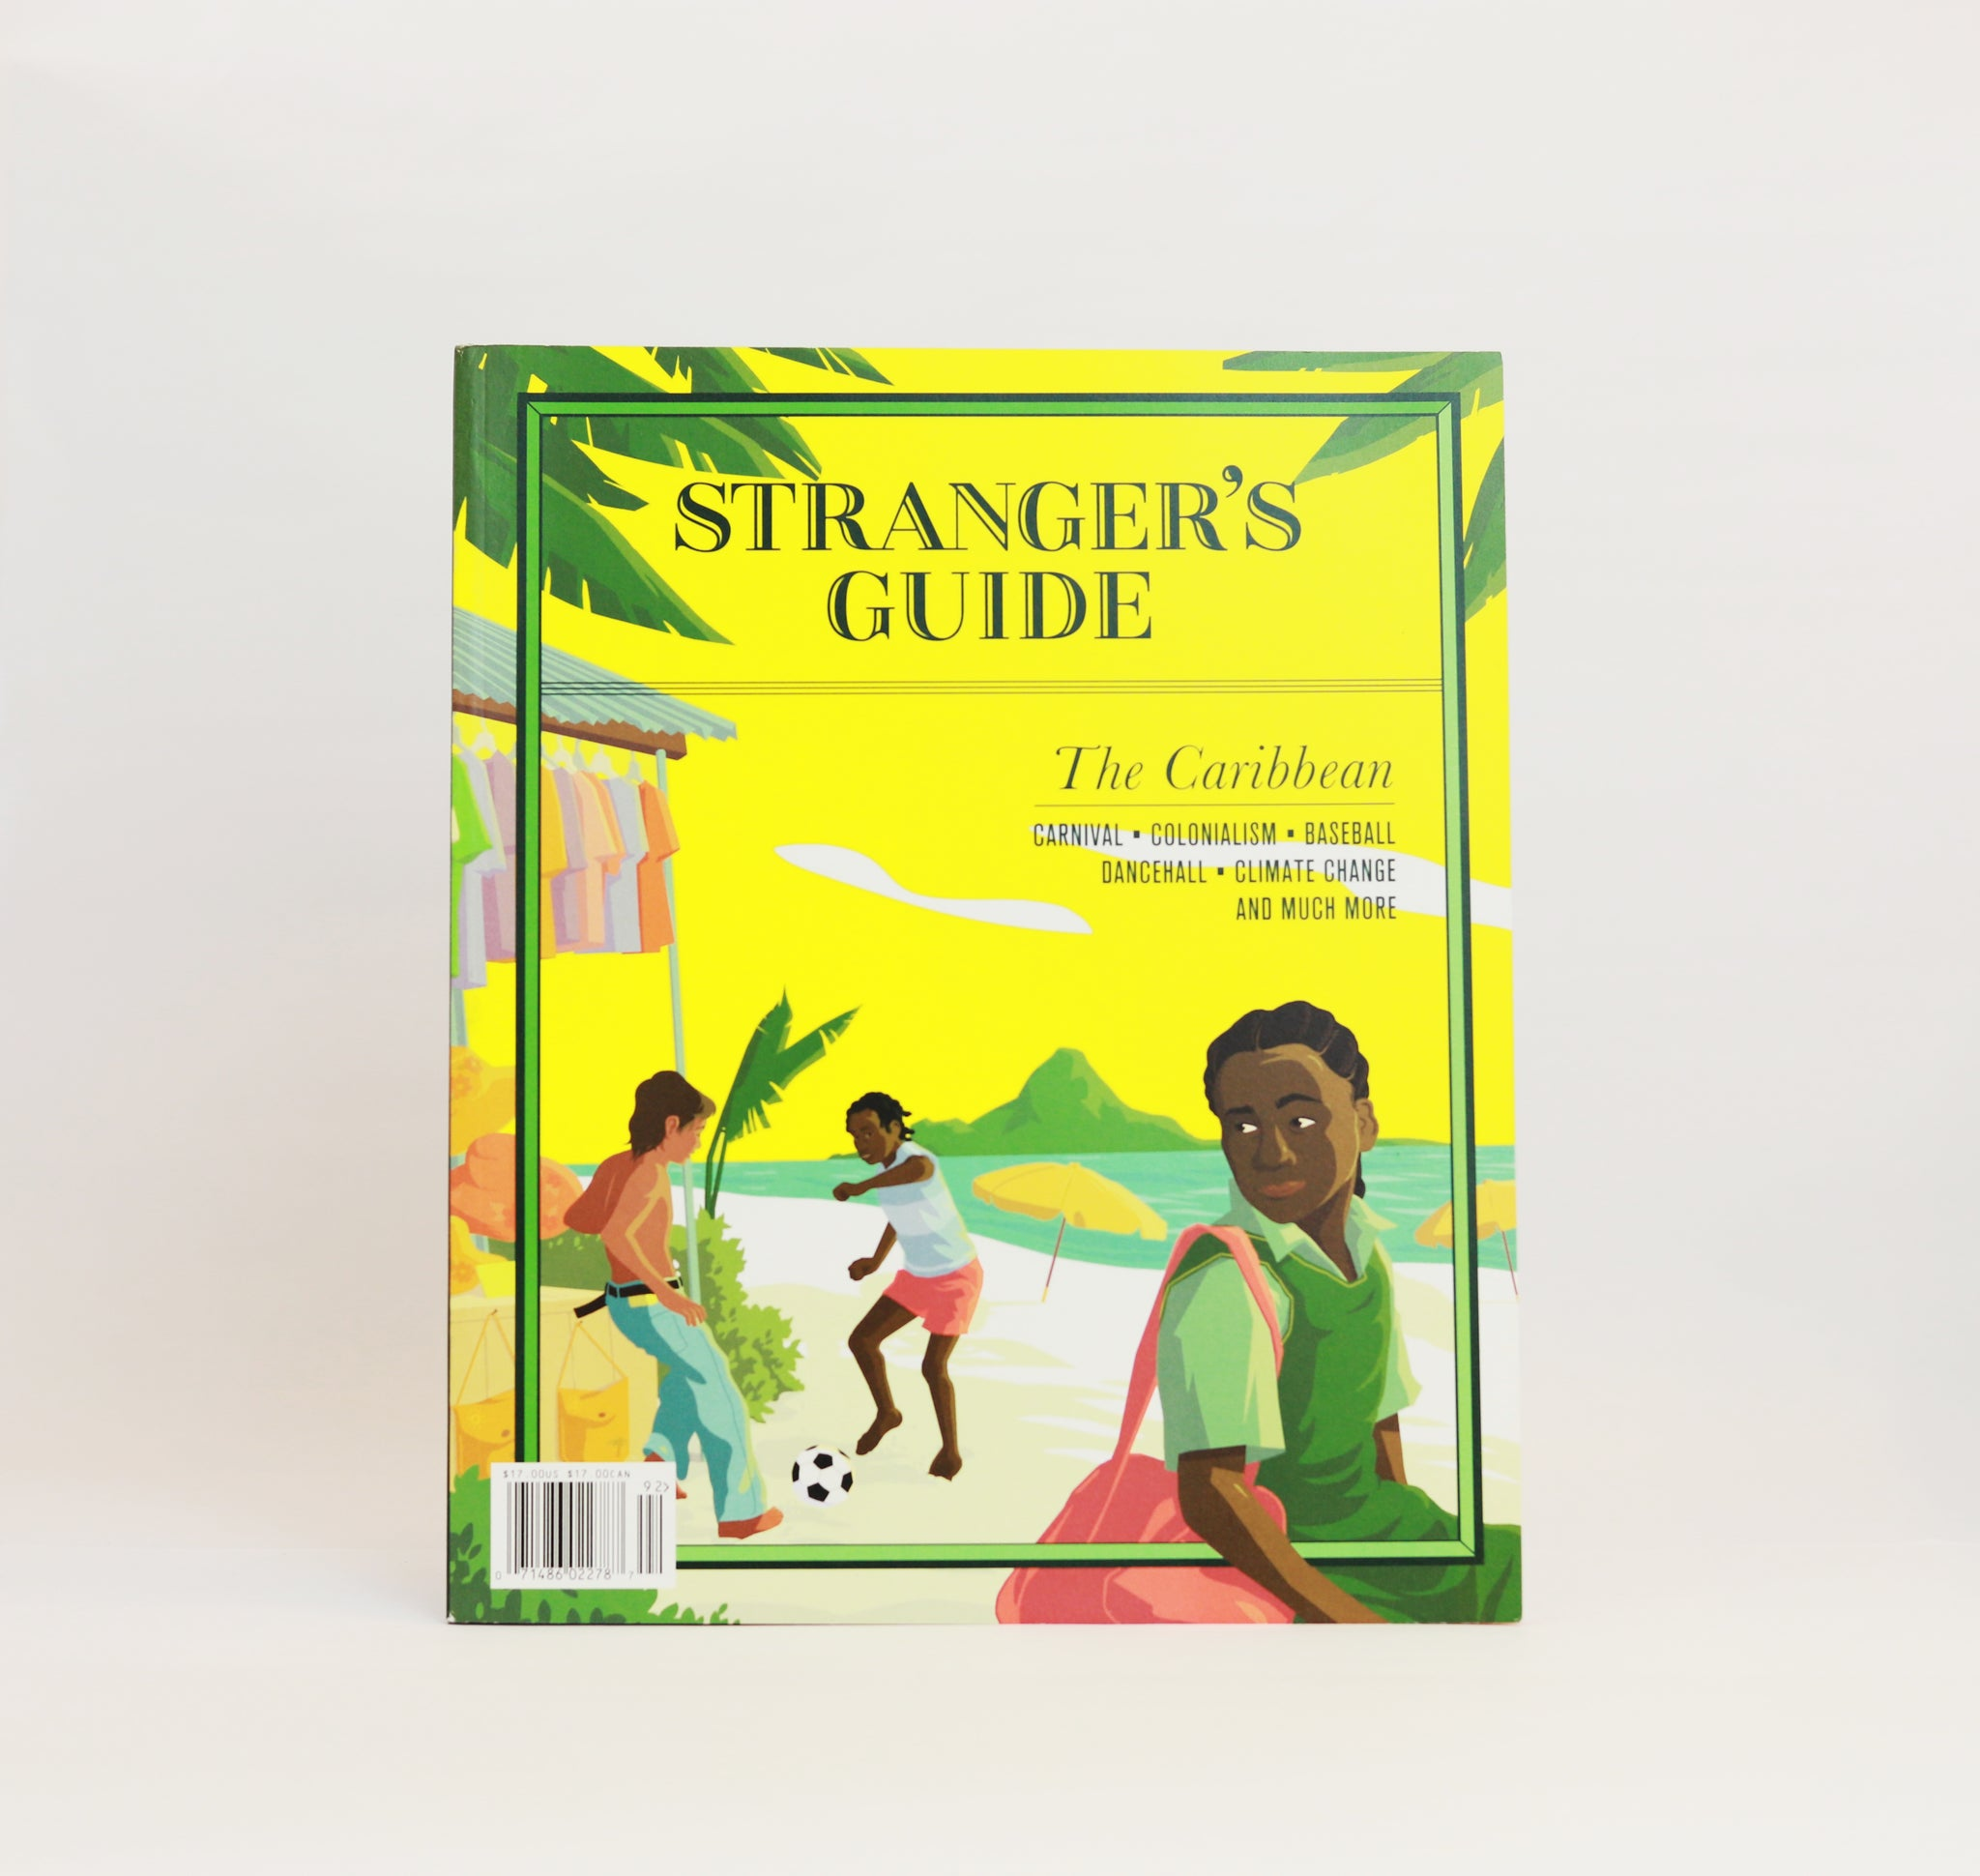 Stranger's Guide: The Caribbean